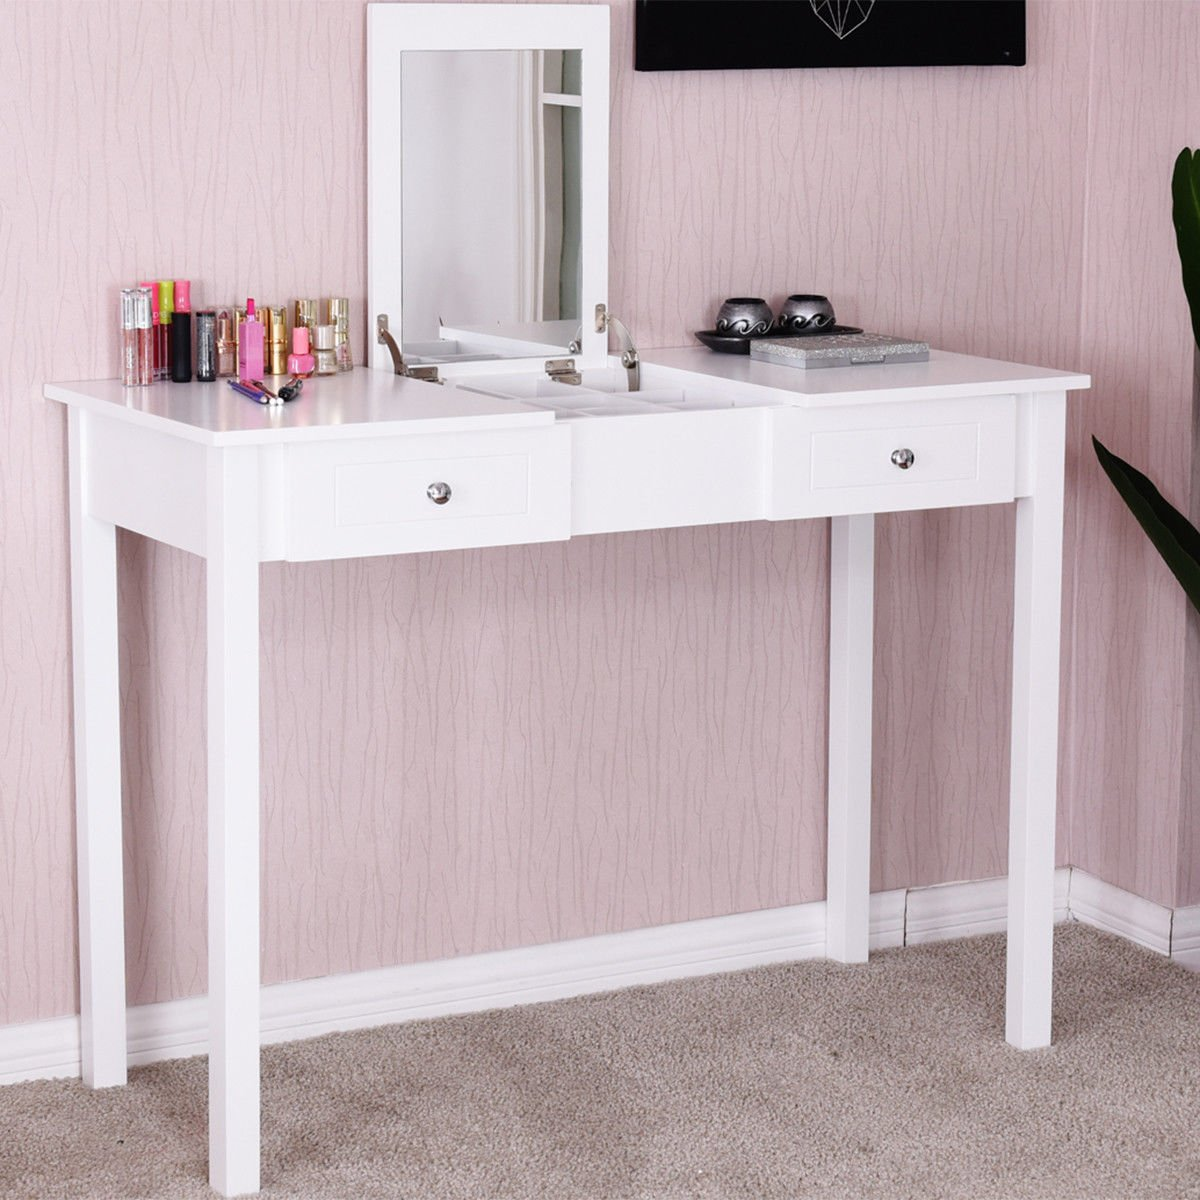 Giantex Vanity Table with Flip Top Mirror with 2 Drawers 1 Removable Organizer Dressing Table Vanity Table, White